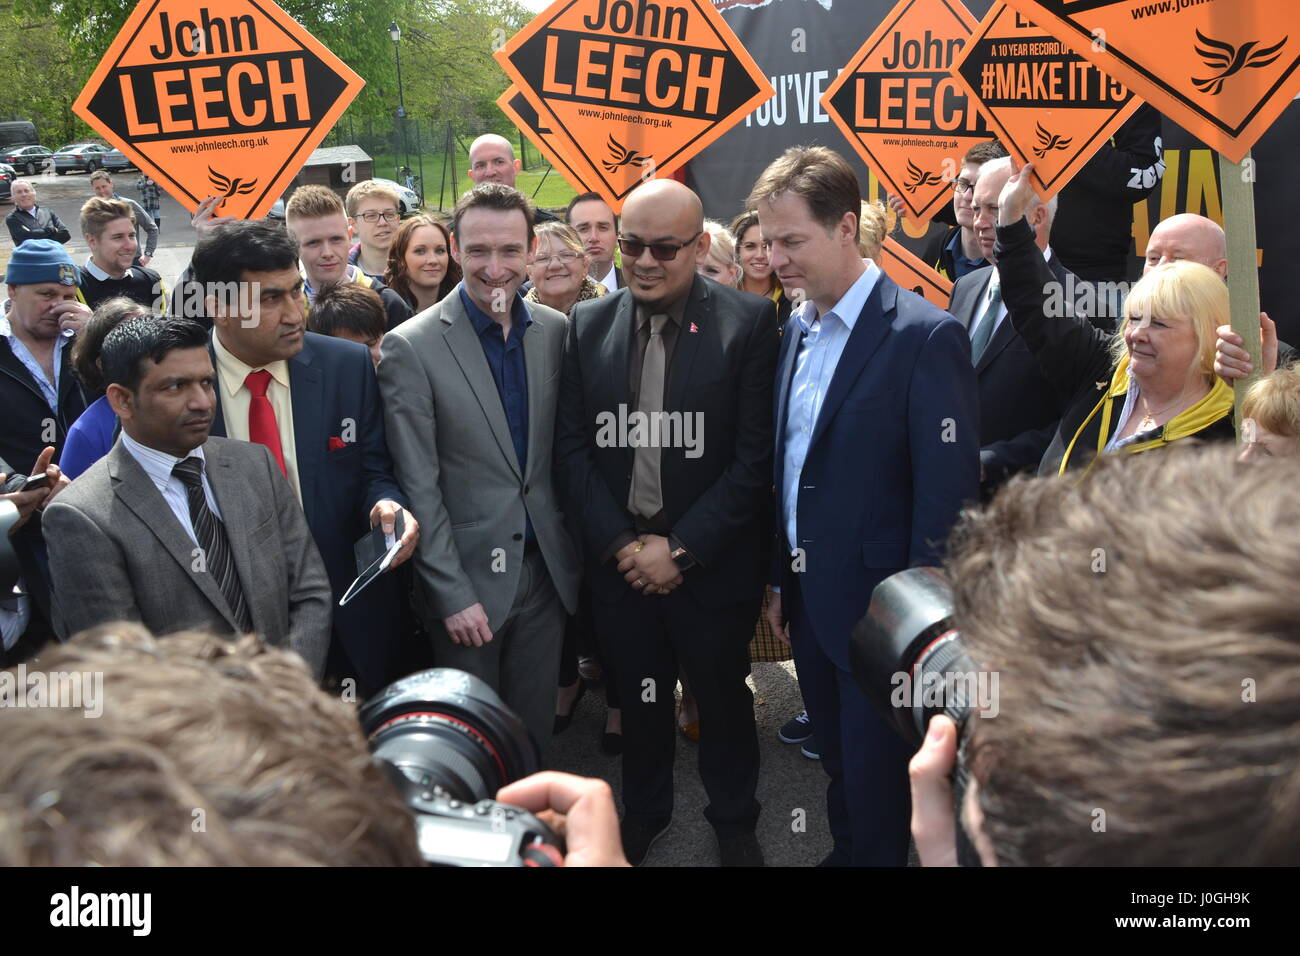 Rt Hon Nick Clegg MP - Deputy Prime Minister & Leader of the Liberal Democrats supports John Leech's re - Stock Image